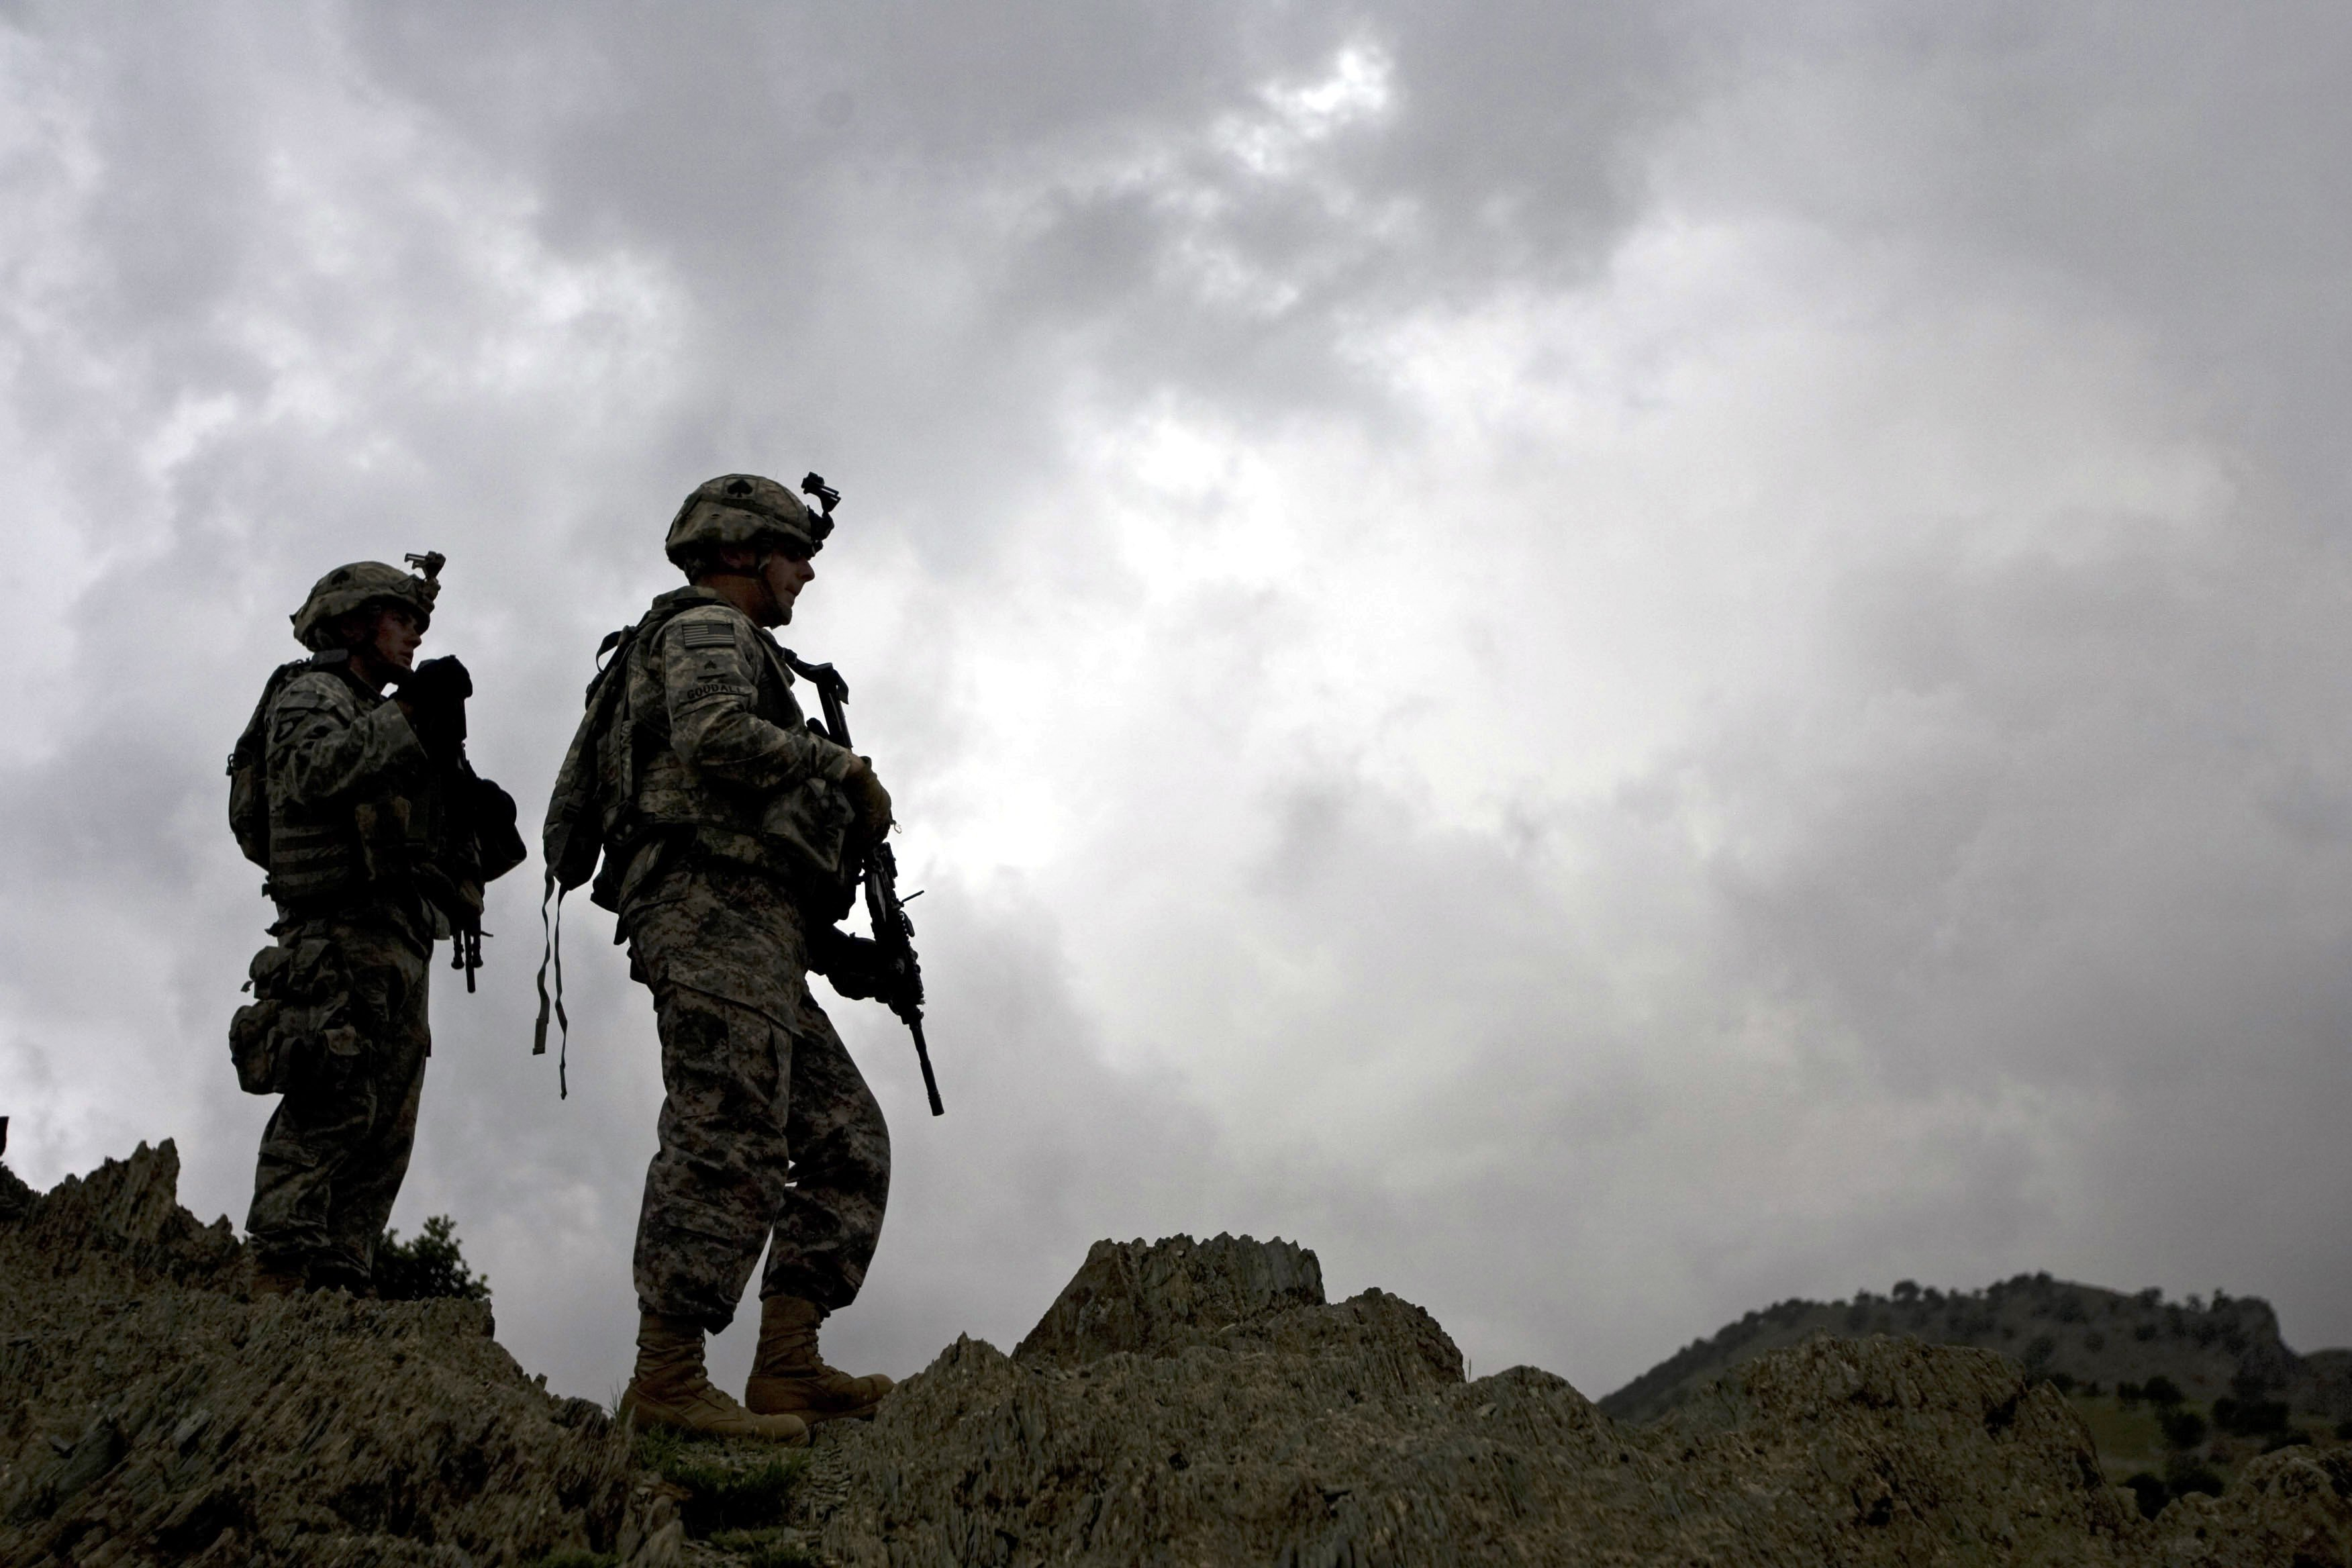 U.S. Soldier Killed in Afghanistan in Anti-ISIS Operation